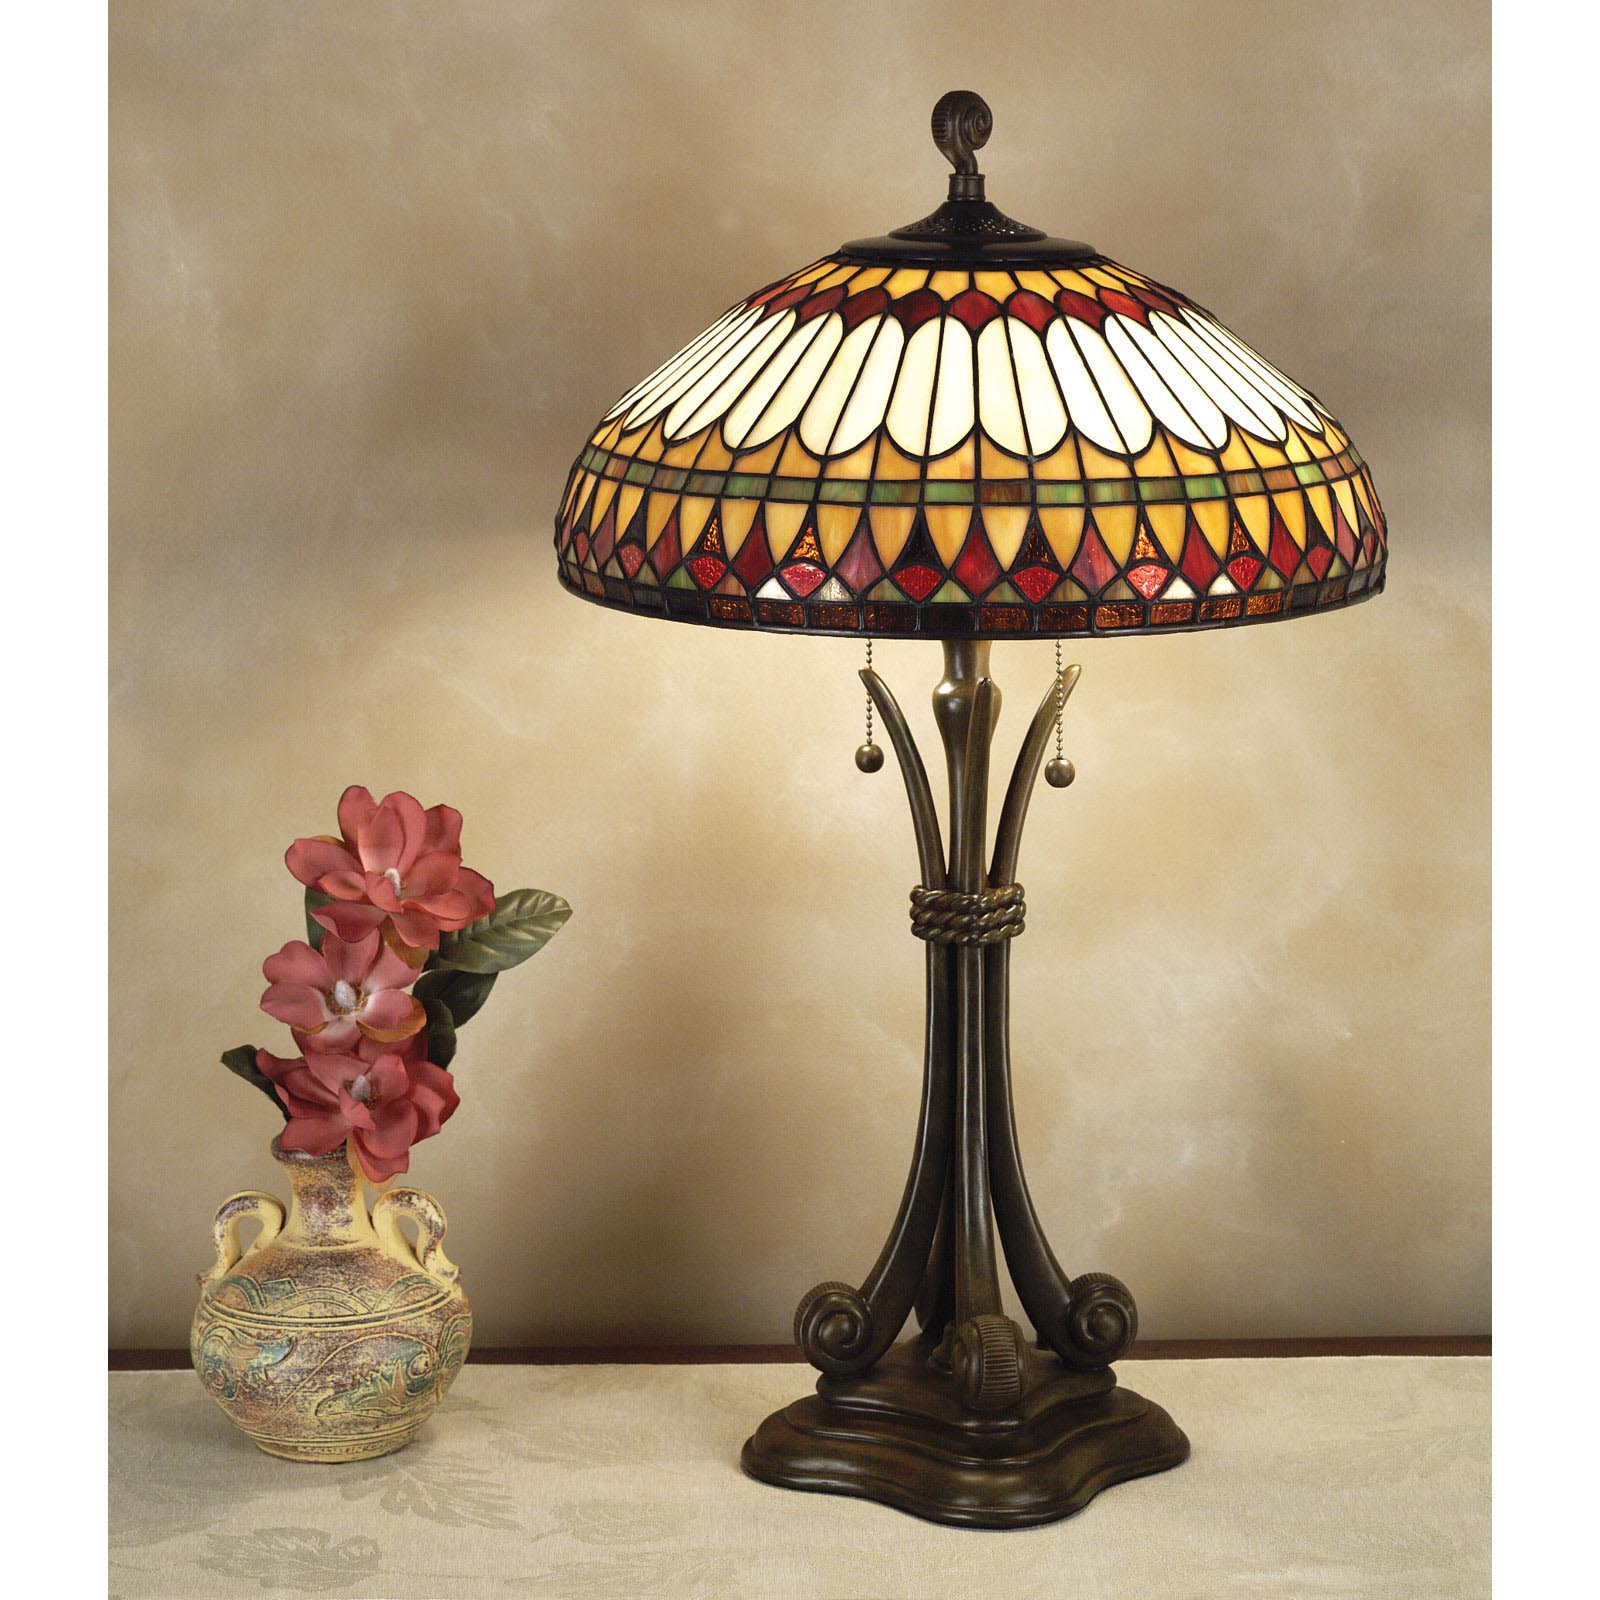 Quoizel West End TF6660BB Tiffany Lamp